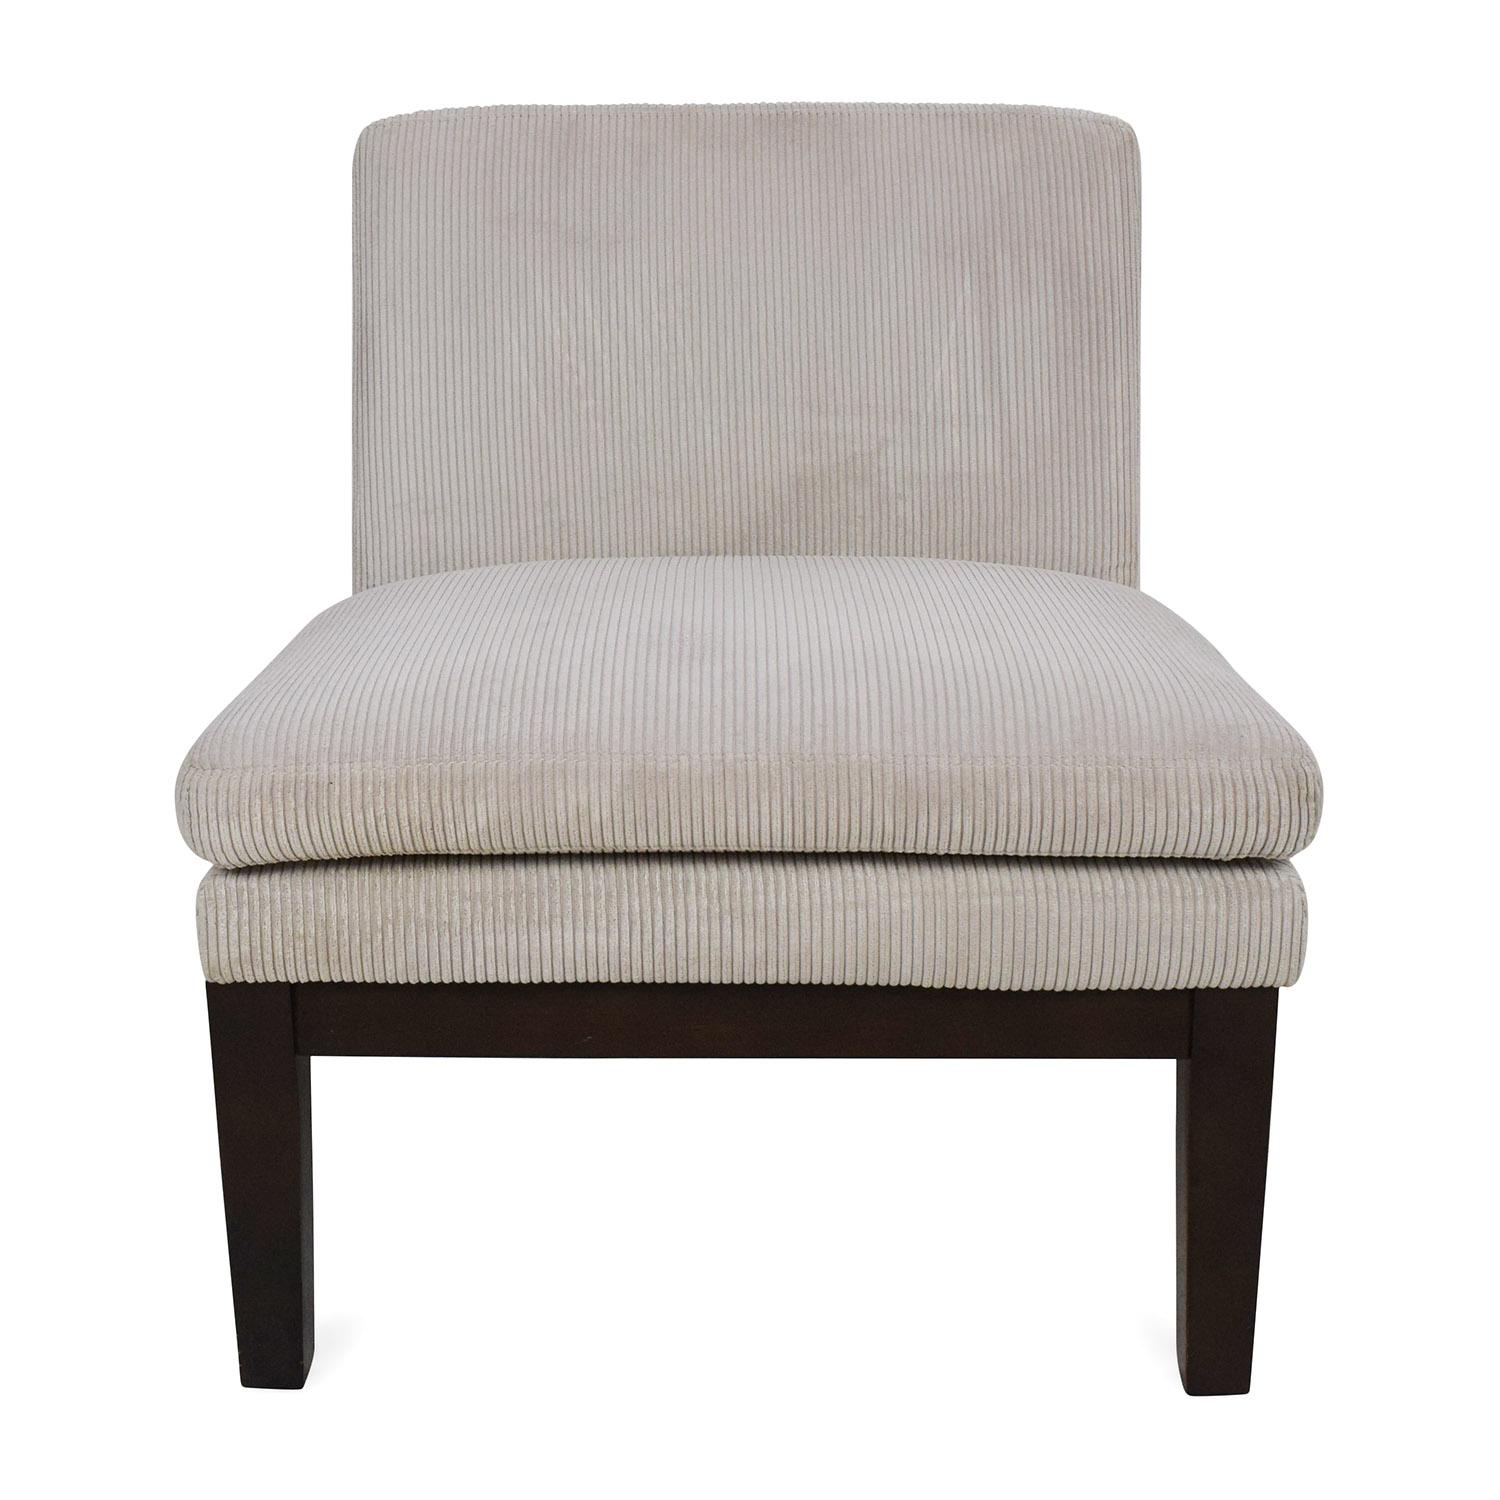 Wonderful West Elm West Elm Corduroy Slipper Chair For Sale ...